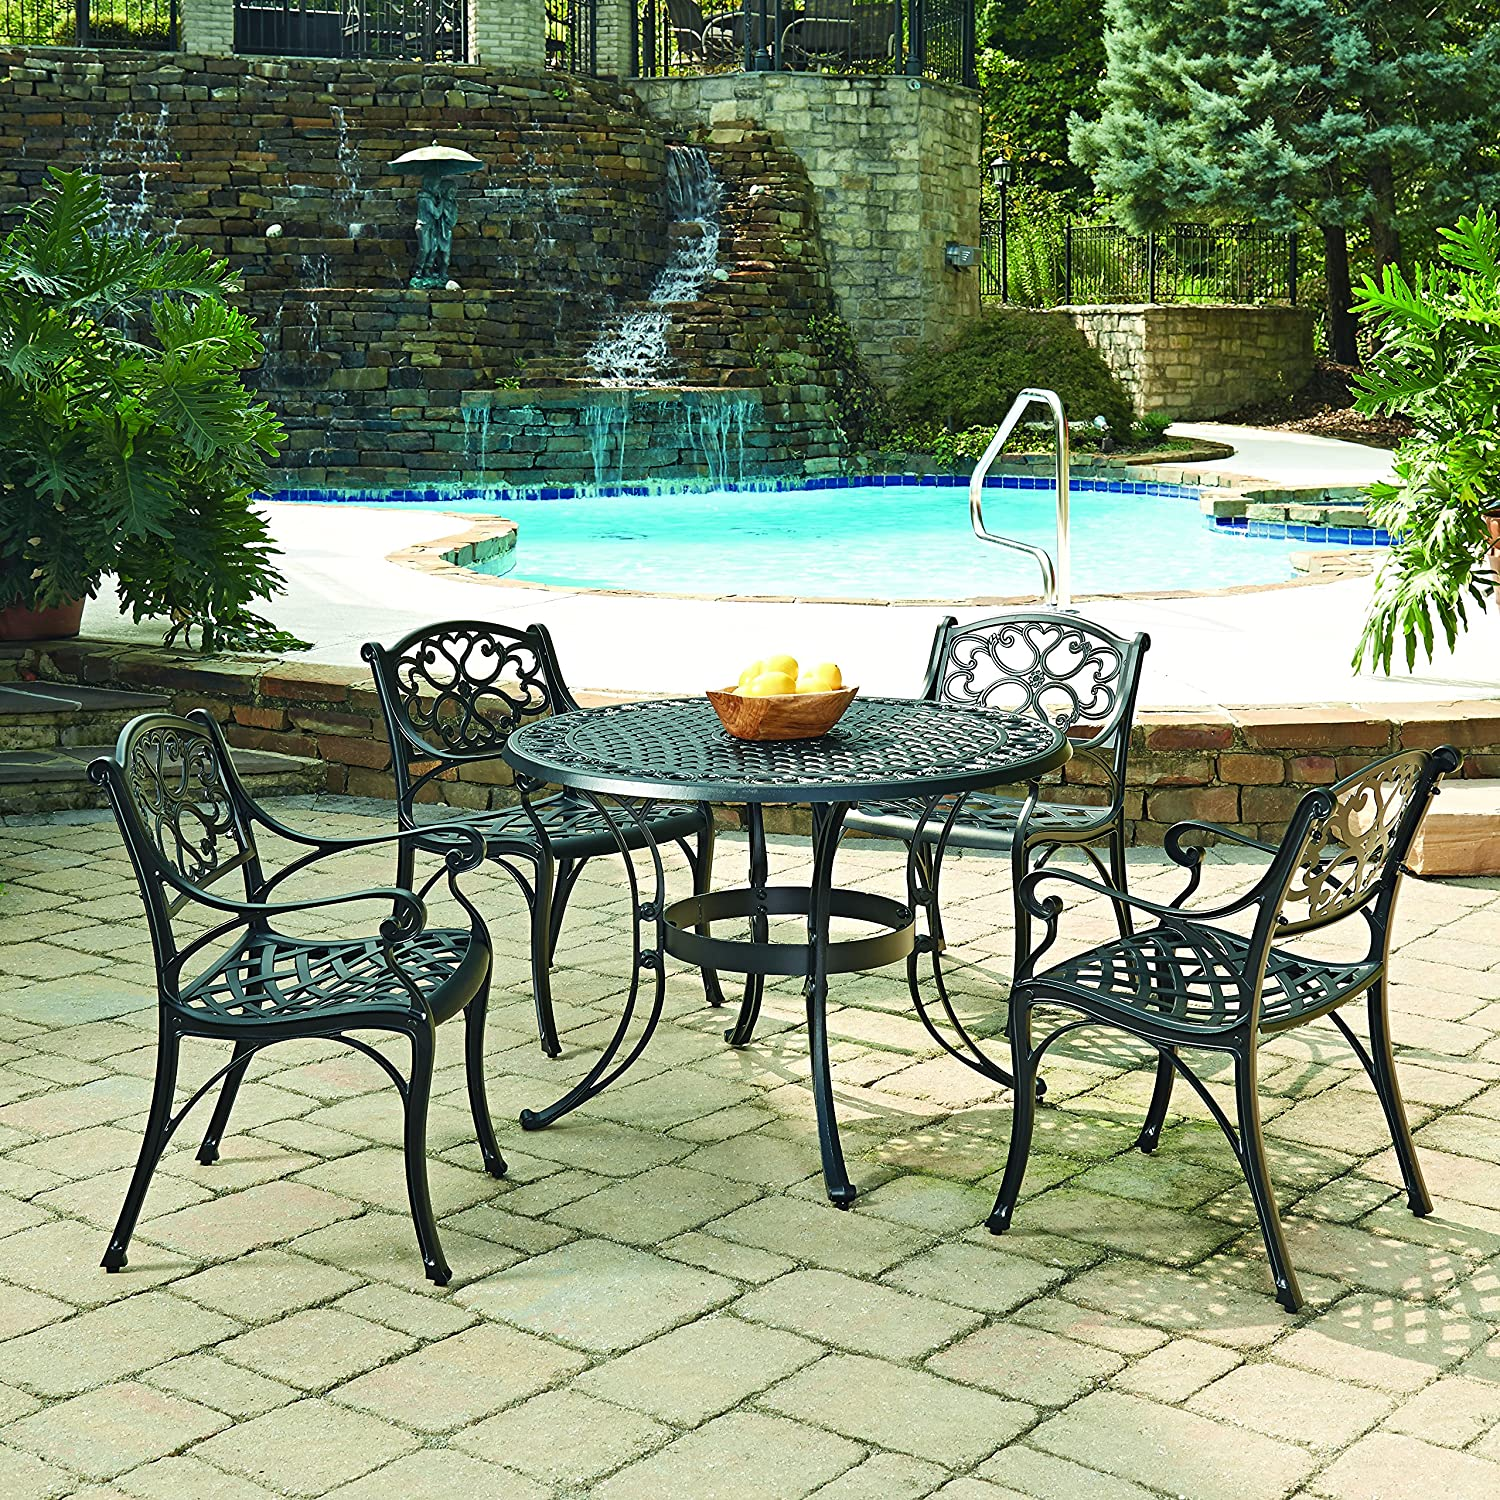 Outdoor Dining Set Round Table.Biscayne Black 5 Piece Outdoor Dining Set With 4 Arm Chairs By Home Styles